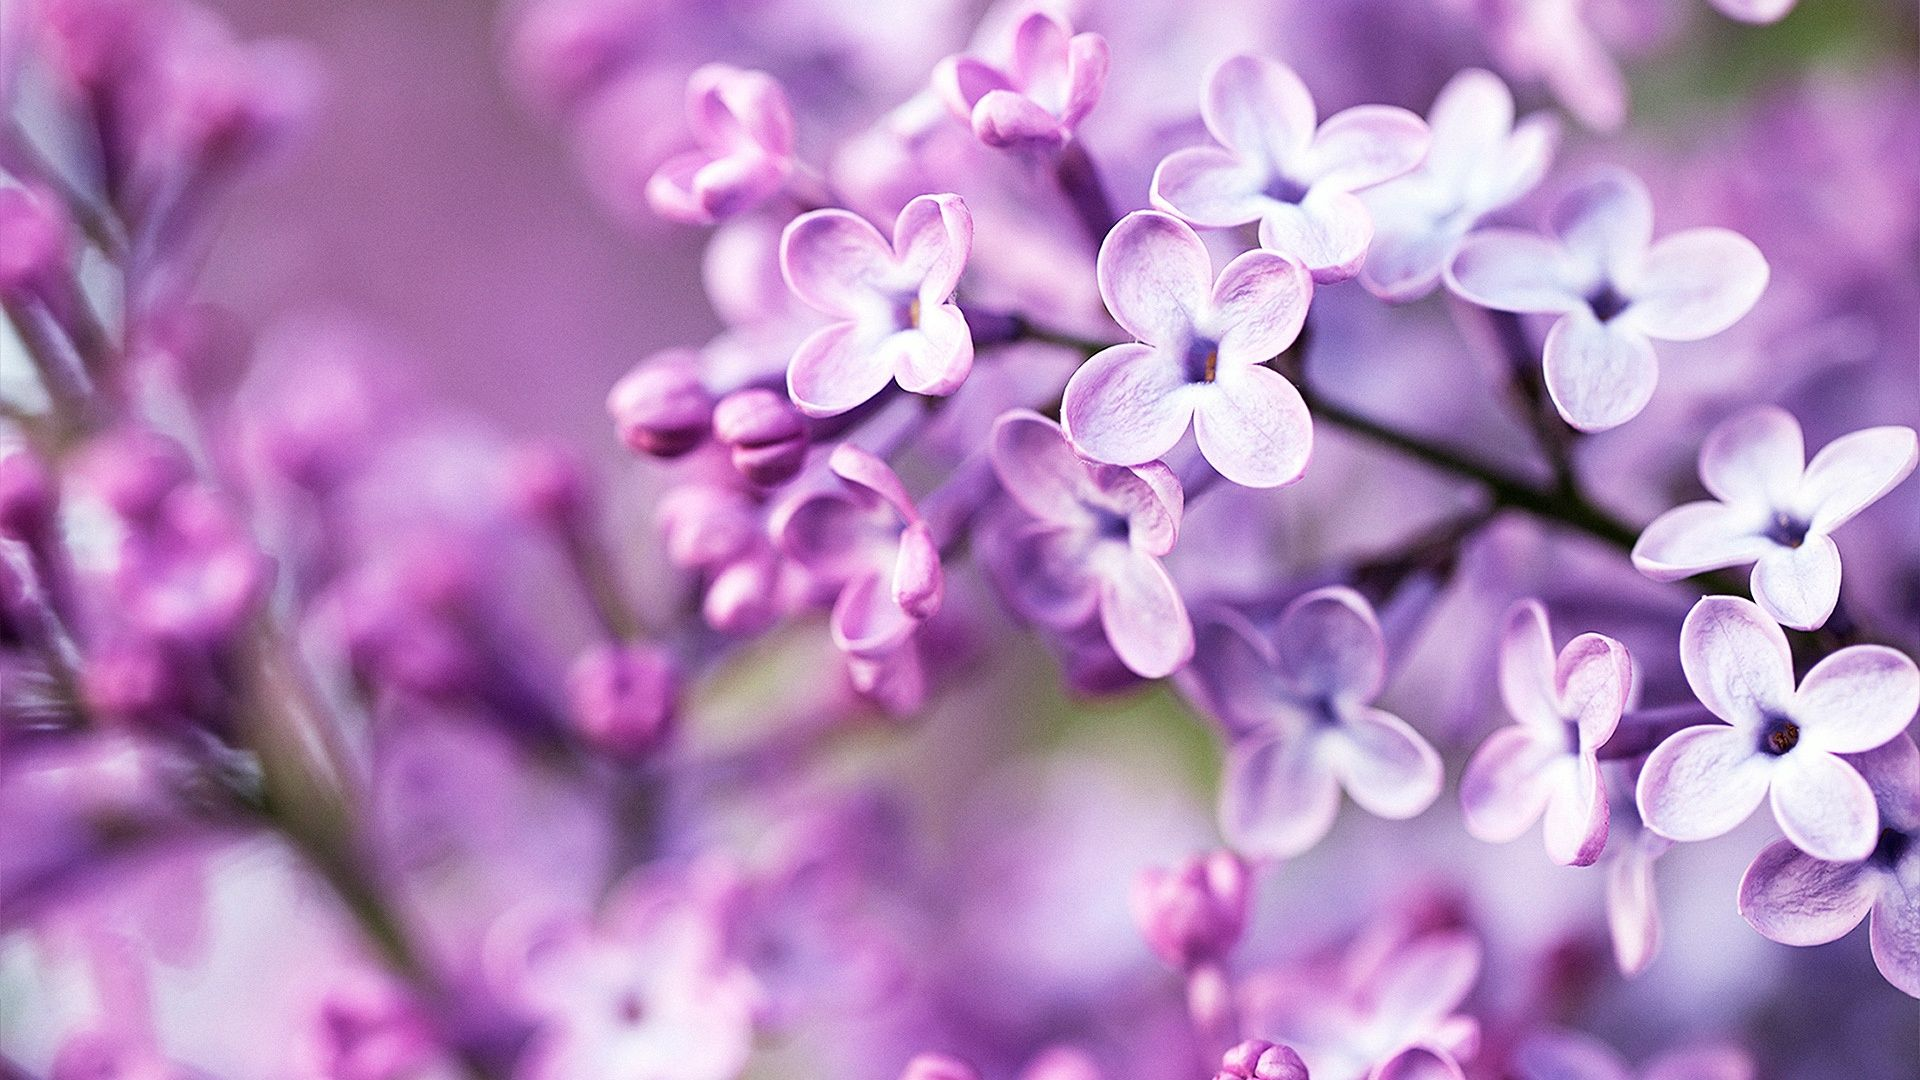 Flower Backgrounds Tumblr Spring Flowers Wallpaper Purple Spring Flowers Purple Flowers Wallpaper